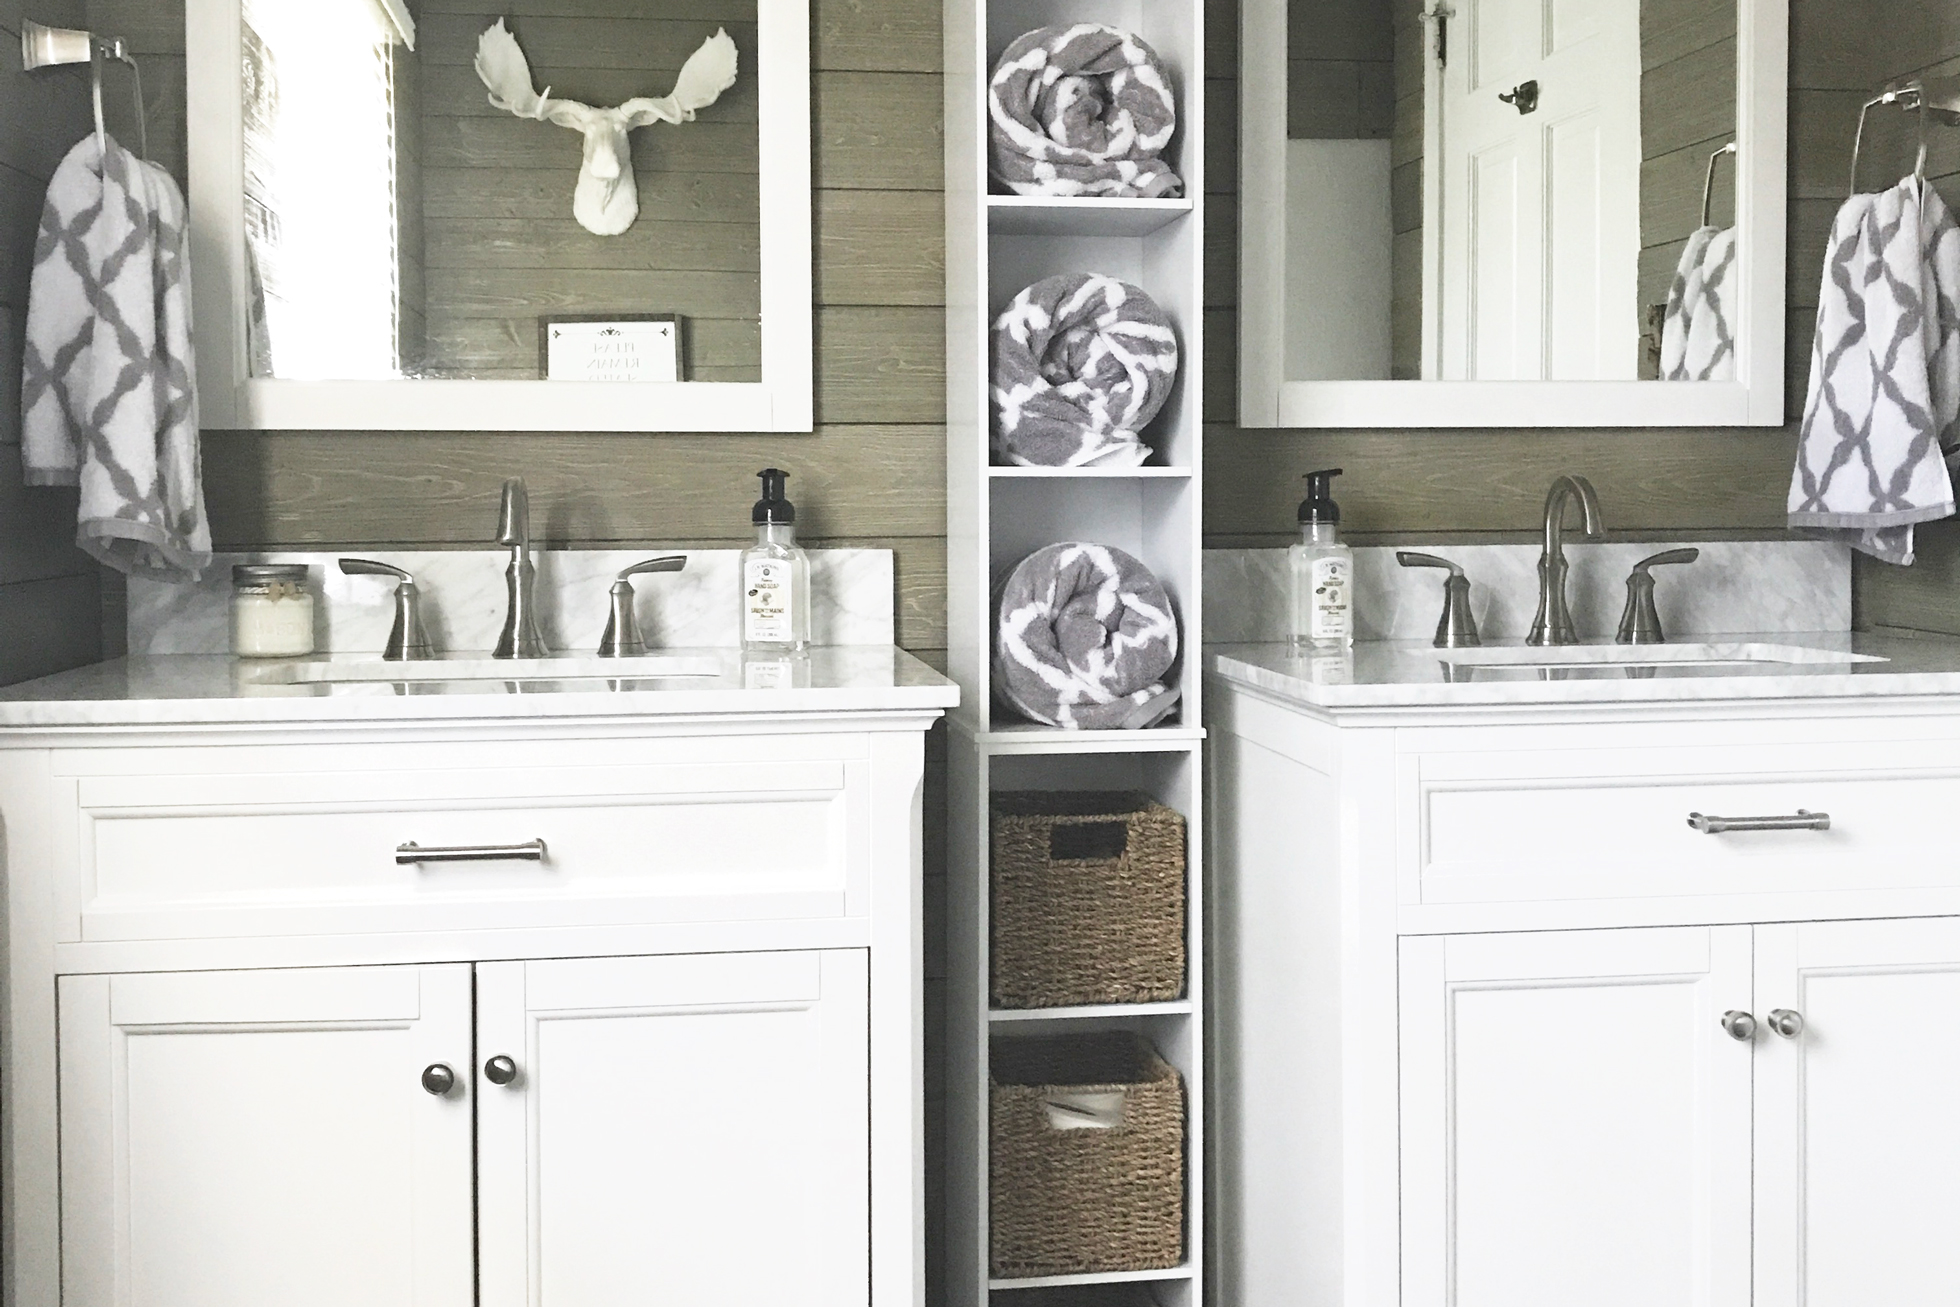 Two sinks in a shiplap bathroom with shelving between